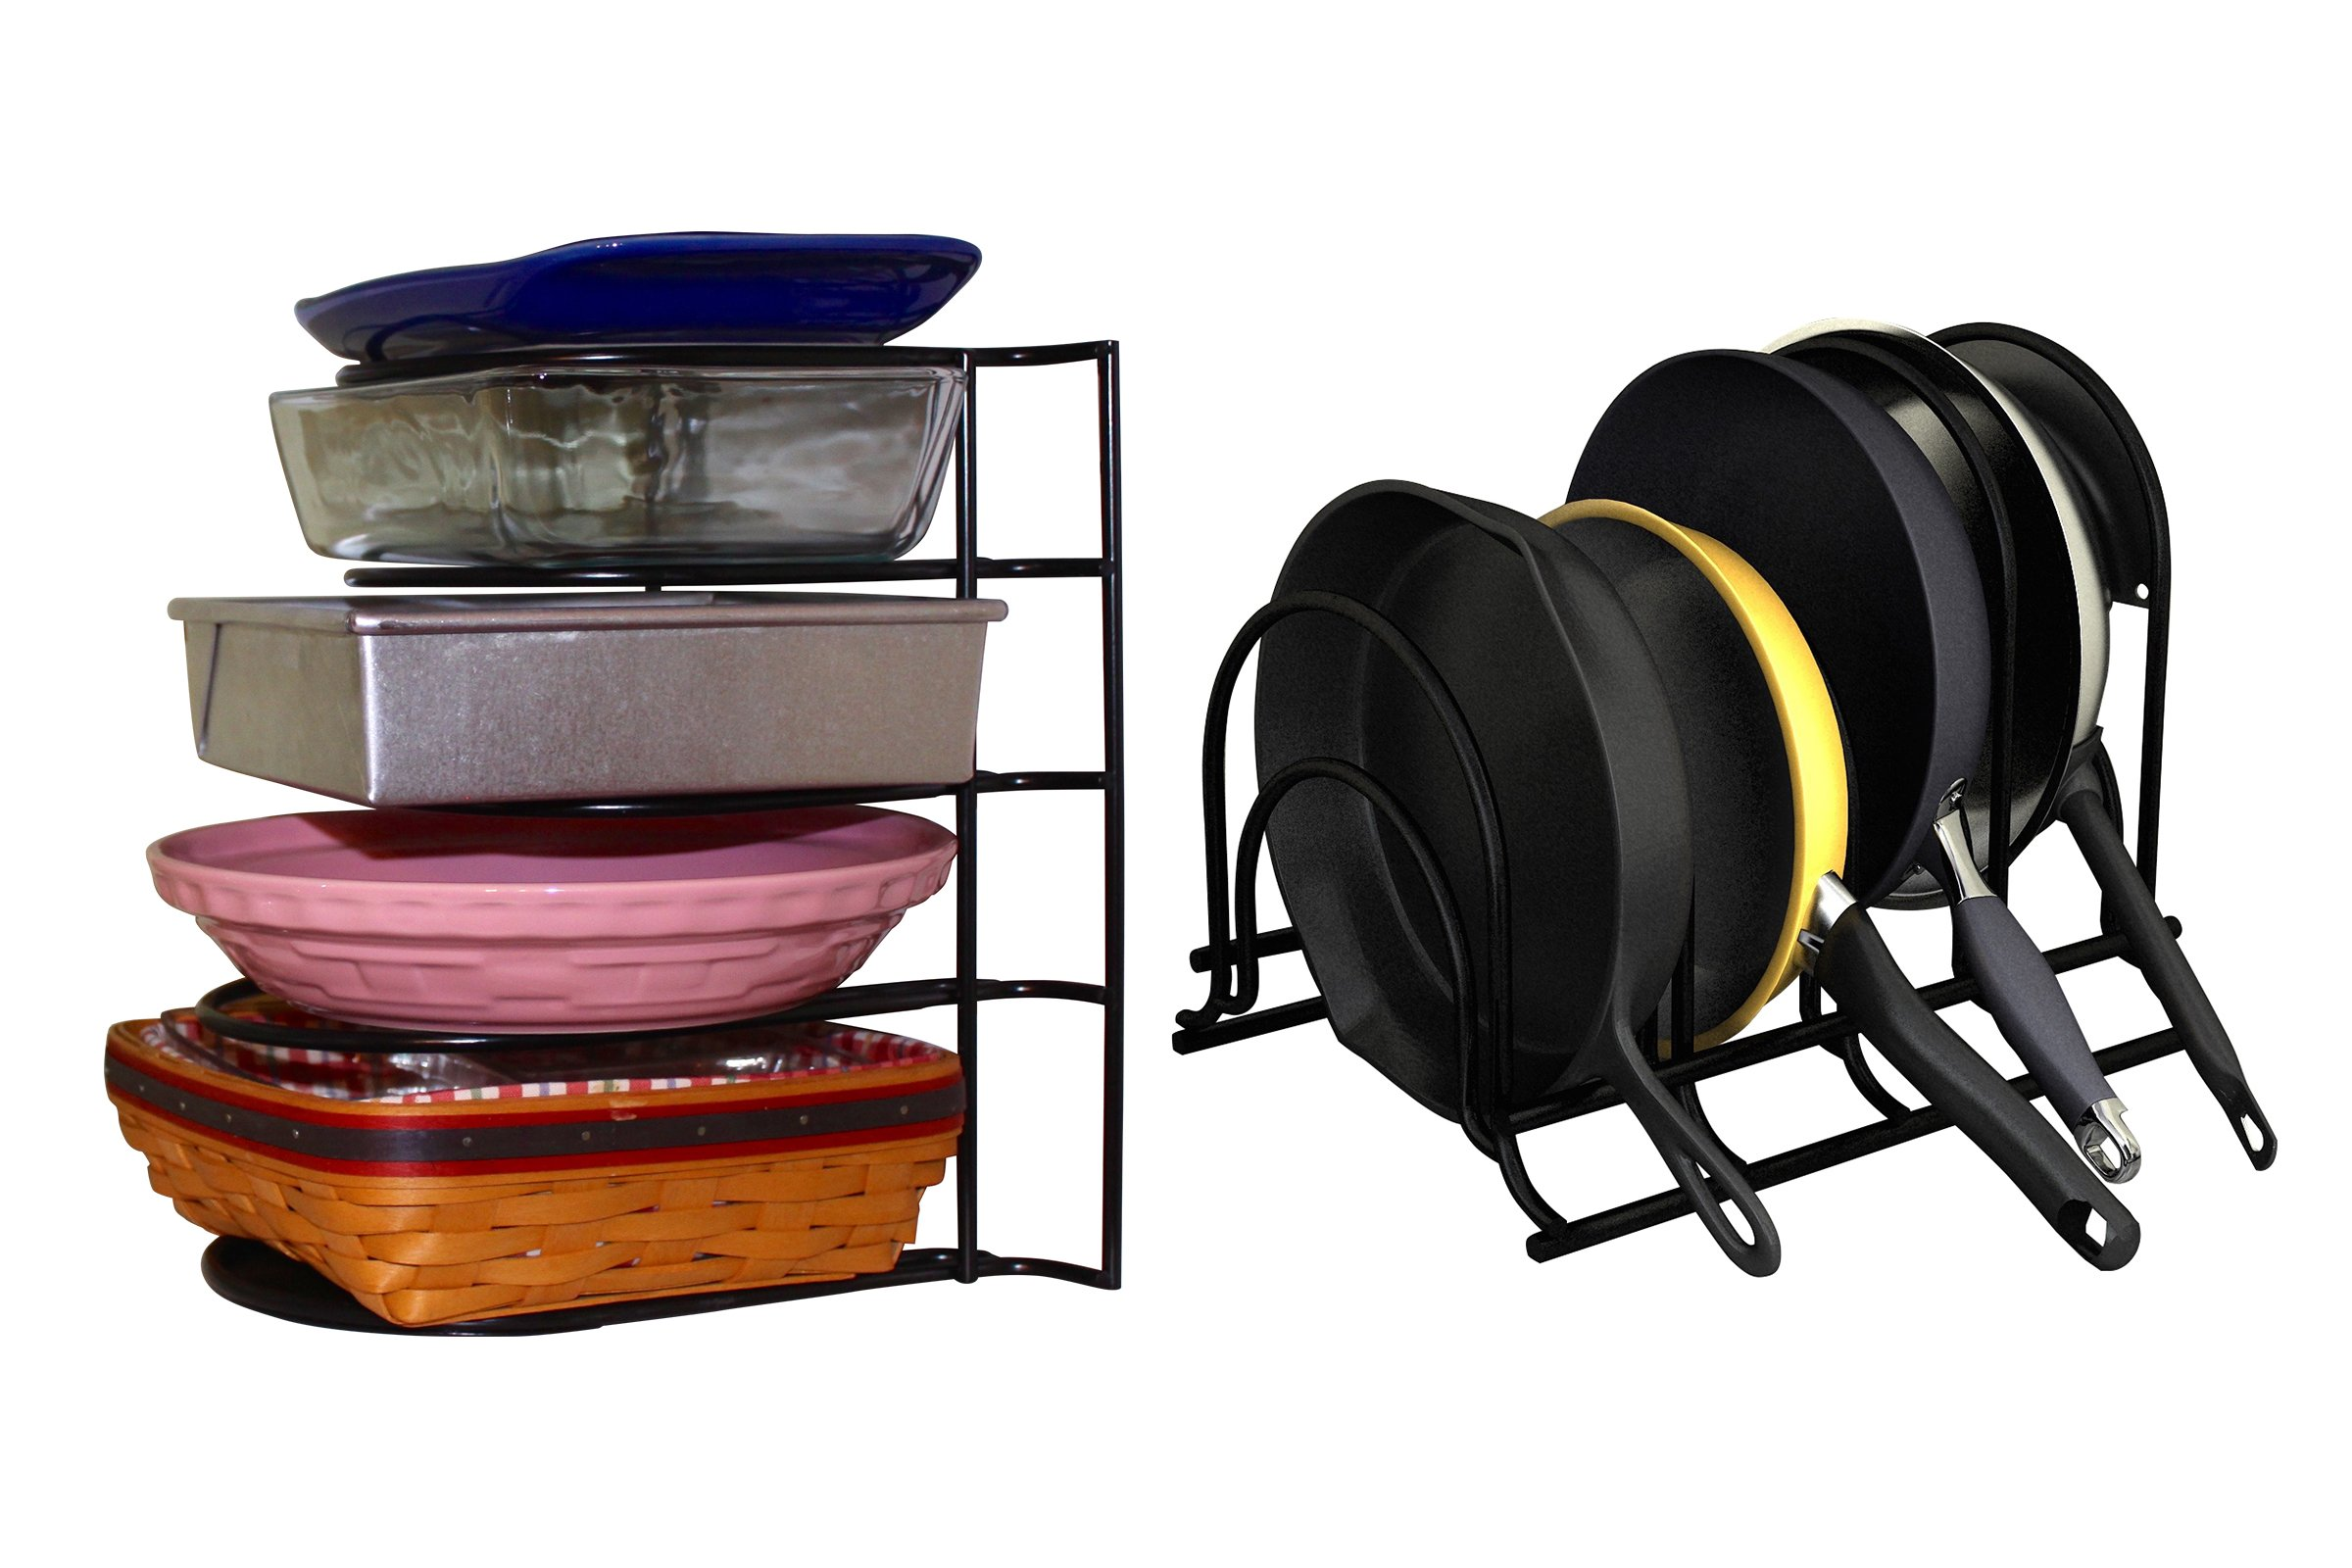 Extreme Matters Heavy Duty Pan Organizer - Bottom Tier 1 Inch Taller for Larger Pans - No Assembly Required - Black by Extreme Matters (Image #8)